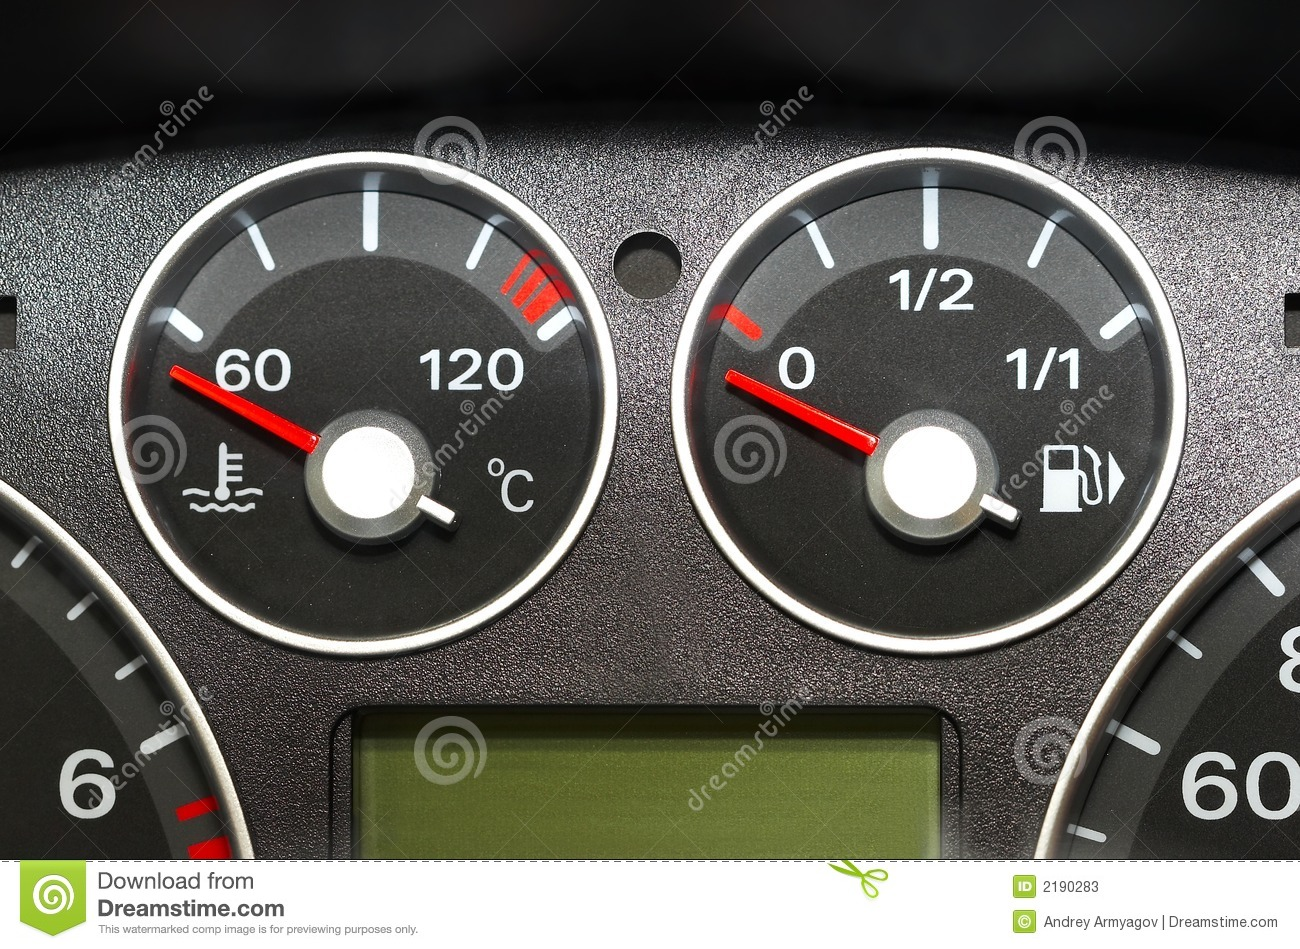 Instrument Panel Of The Car Stock Image